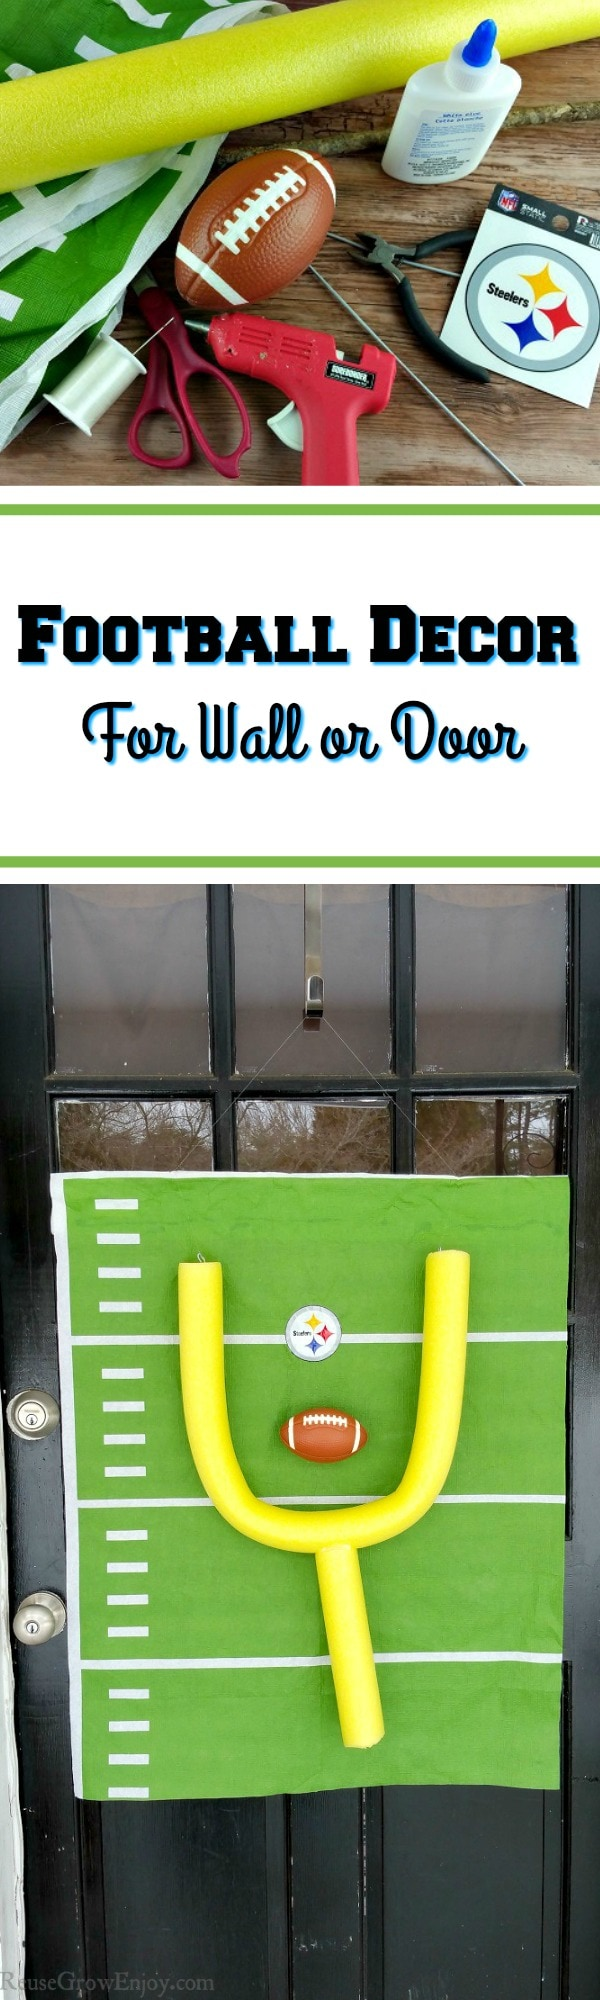 The bottom picute is A black door with glass windows with a homemade football decor hanging on it. The decor is a yellow pool noodle making up the goal and a green backing that looks like a football field with a Steelers logo in the center. Top picture is of the supplies needed to make it. IN the center there is a text overly that says